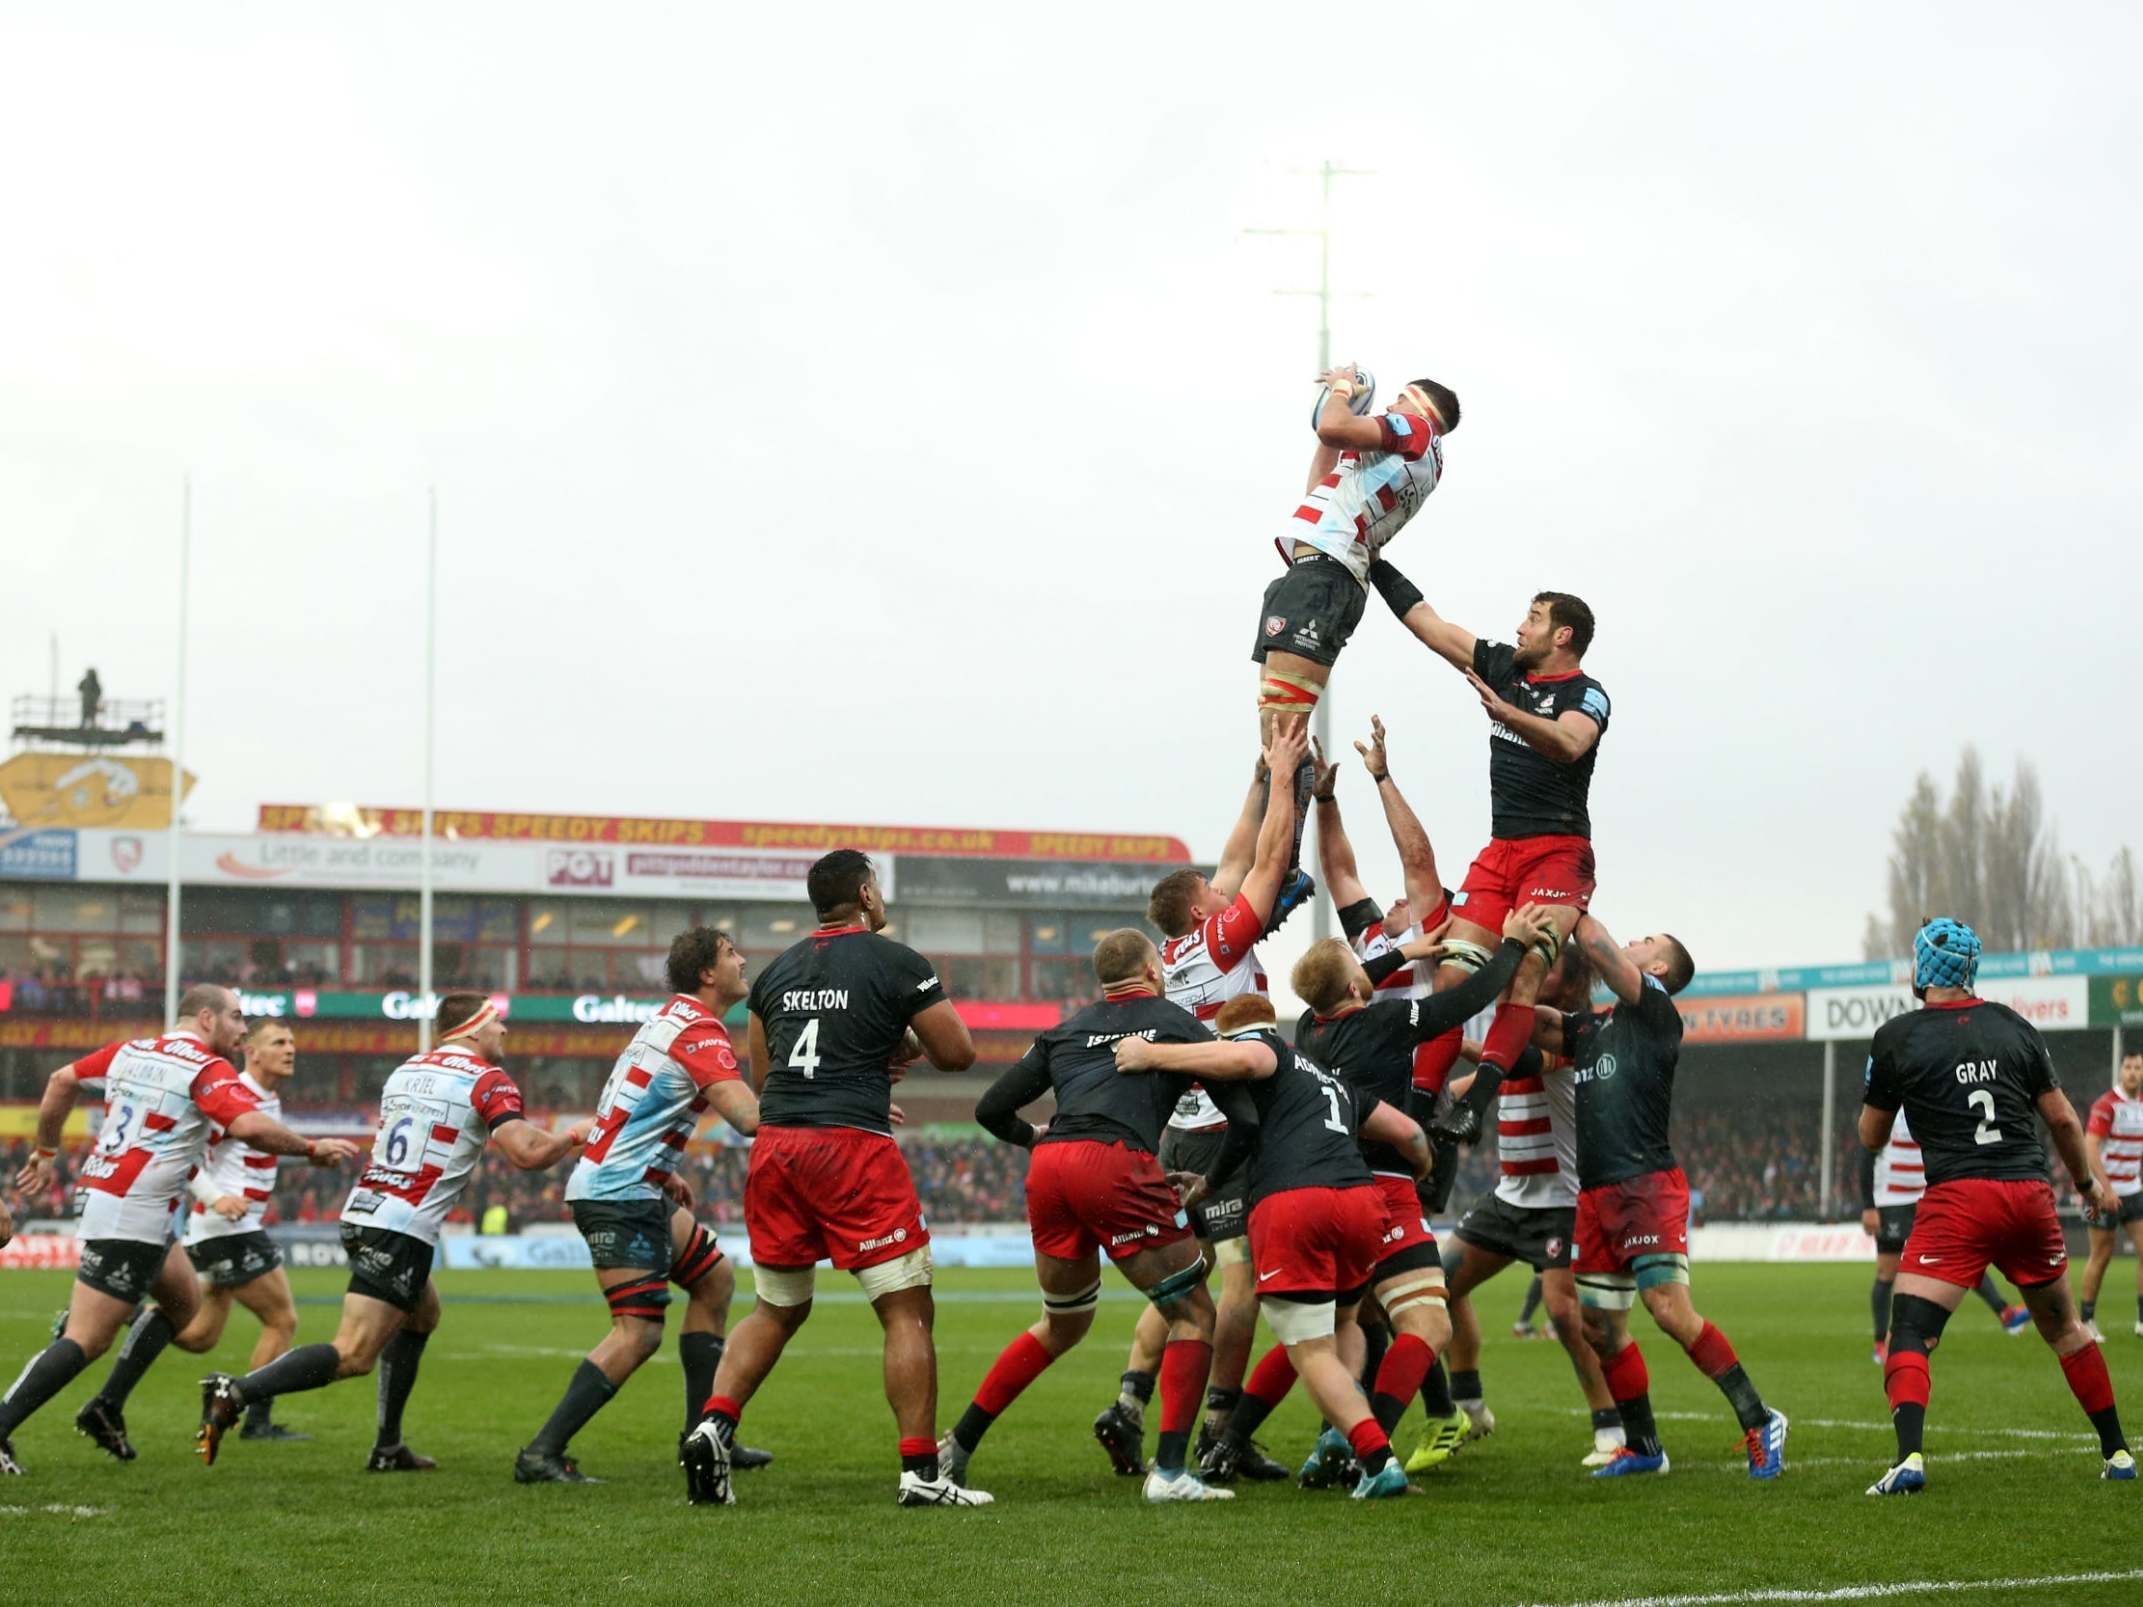 Saracens confident over appeal against sanctions for breaching salary cap rules